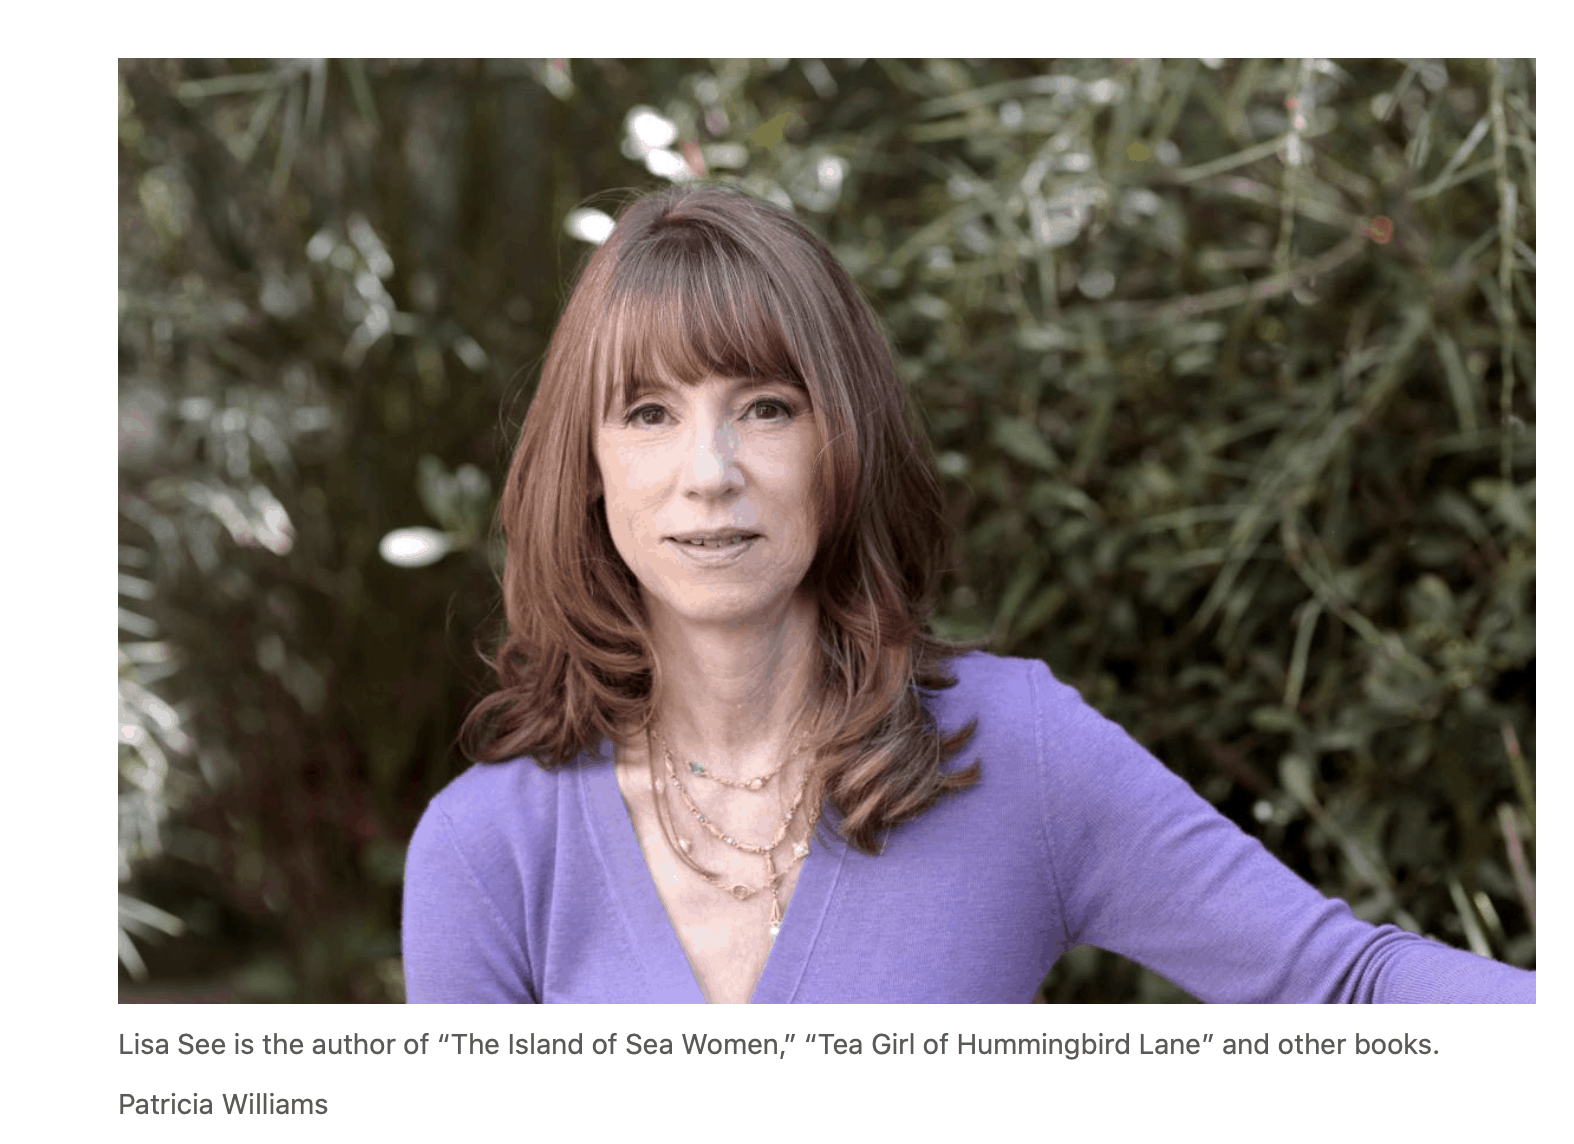 Author Lisa See will receive the 2020 Tucson Festival of Books Founders Award